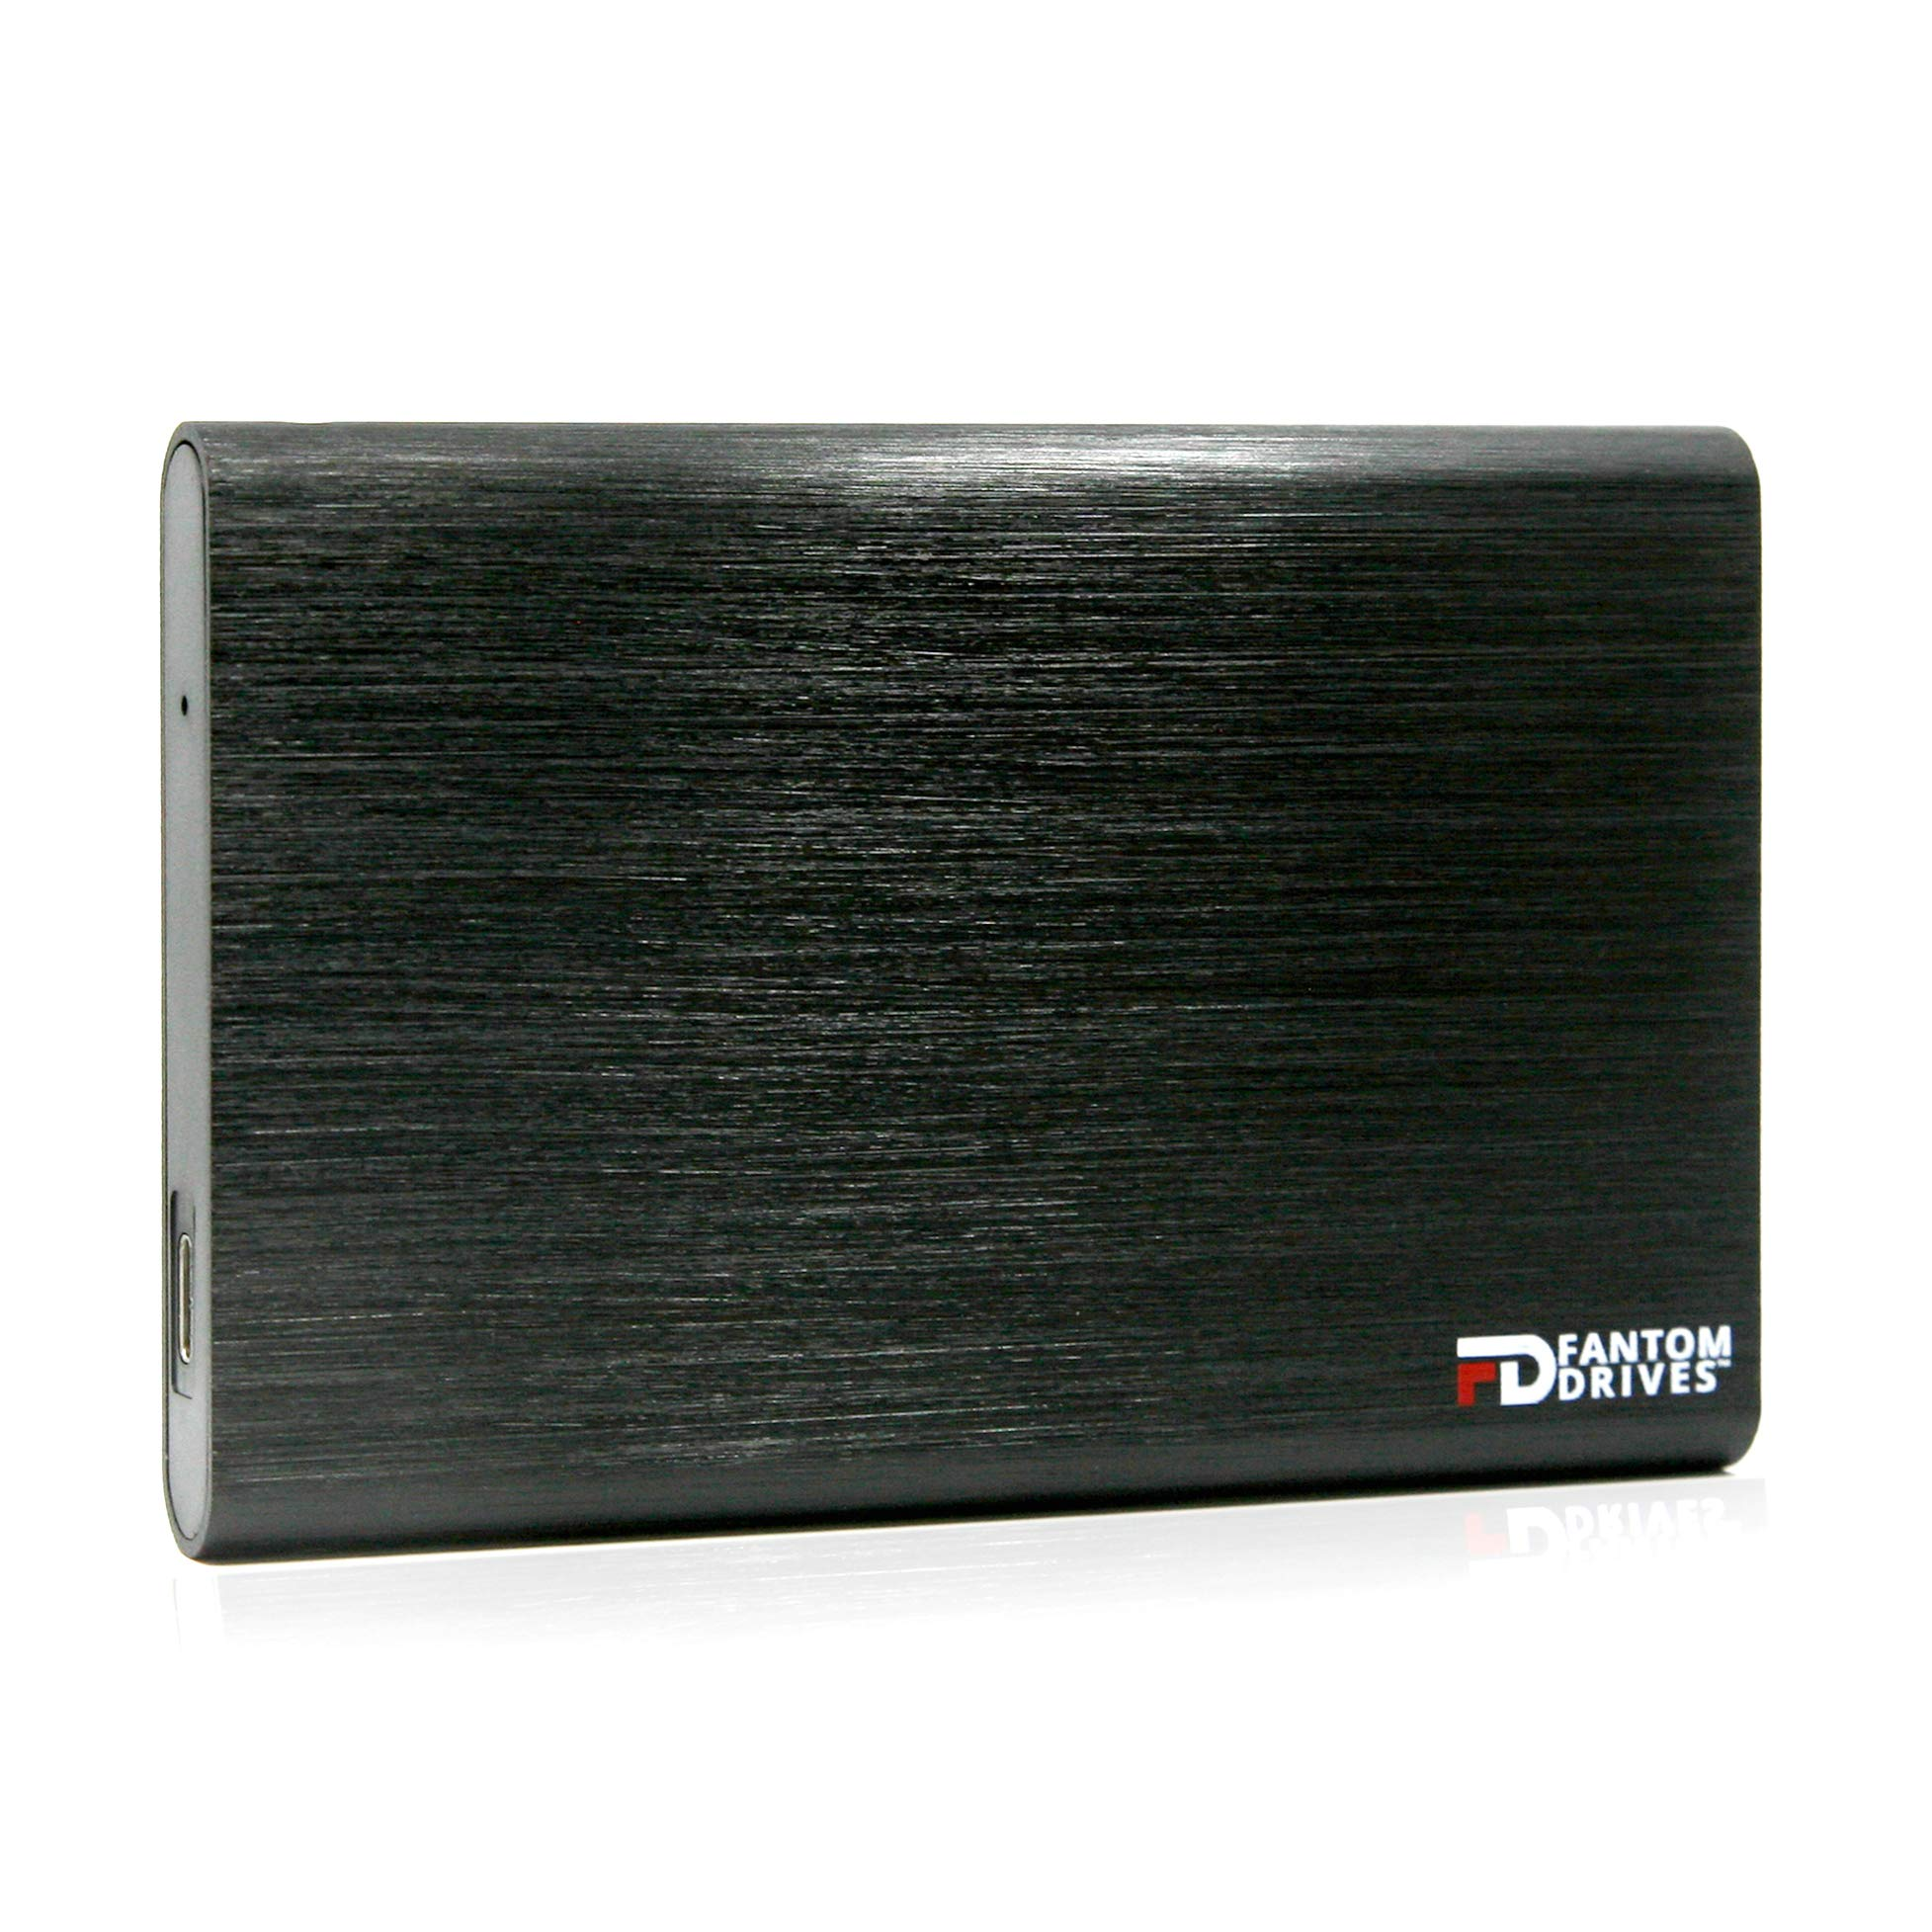 Fantom Drives External SSD 2TB USB 3.1 Gen 2 Type-C 10Gb/s - Black - Windows - GFORCE 3.1 Portable SSD Series - CSD2000B-W